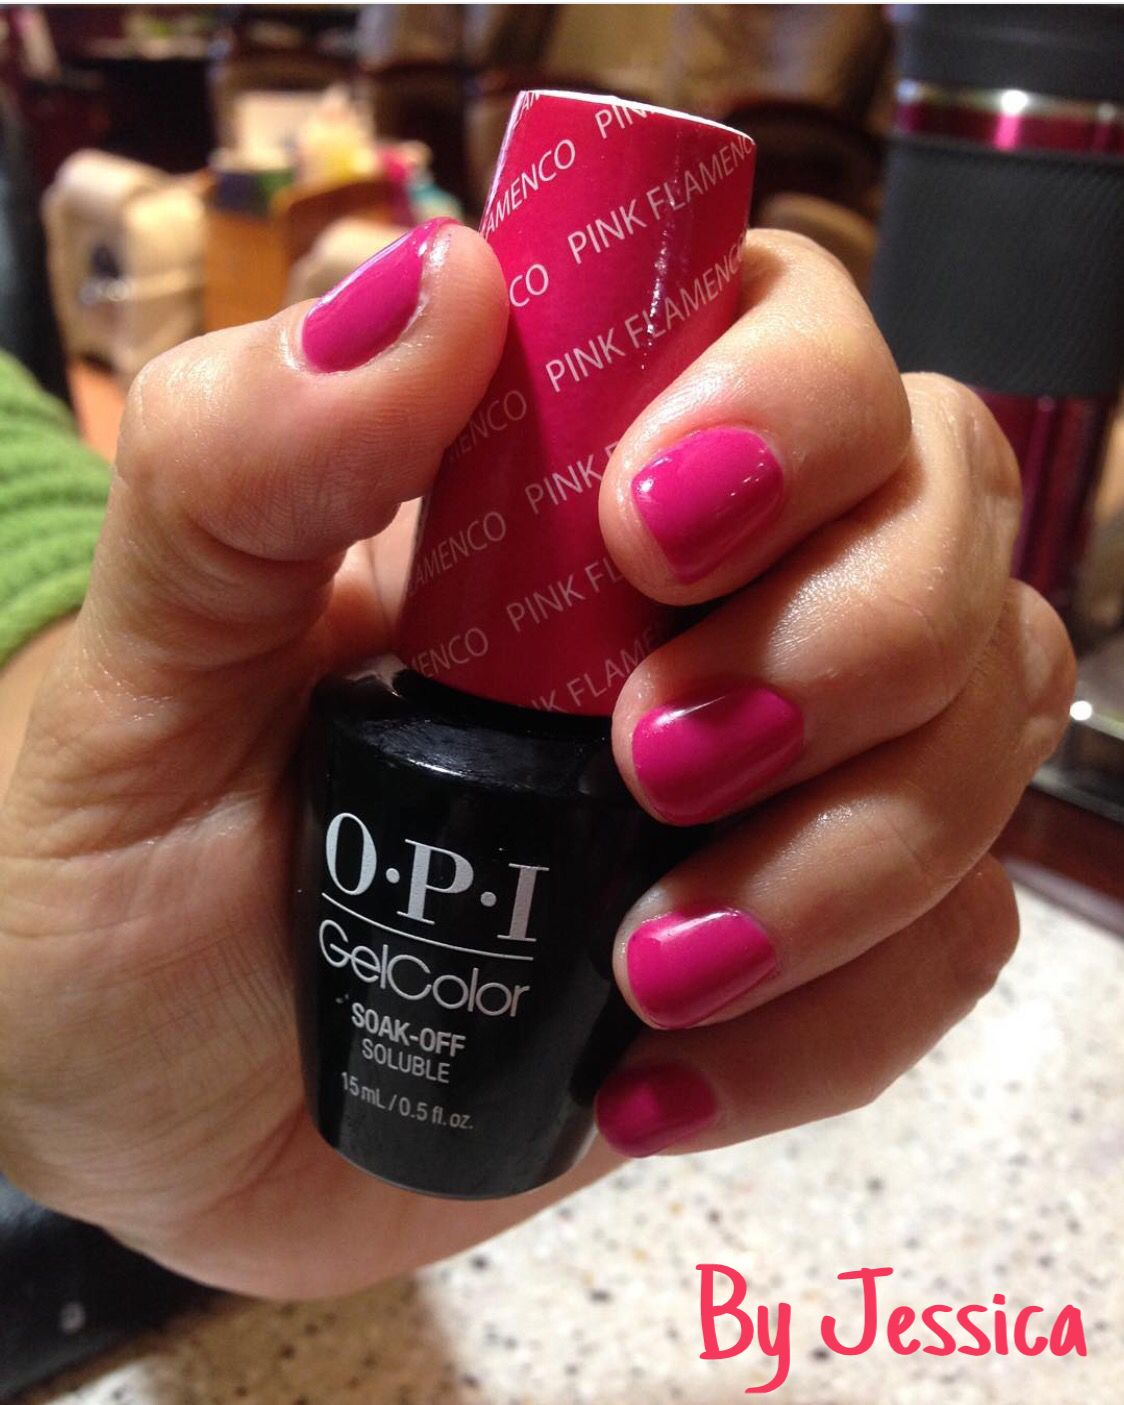 Opi gel color pink flamenco by jessica gel nails opi gel color pink flamenco by jessica nvjuhfo Images